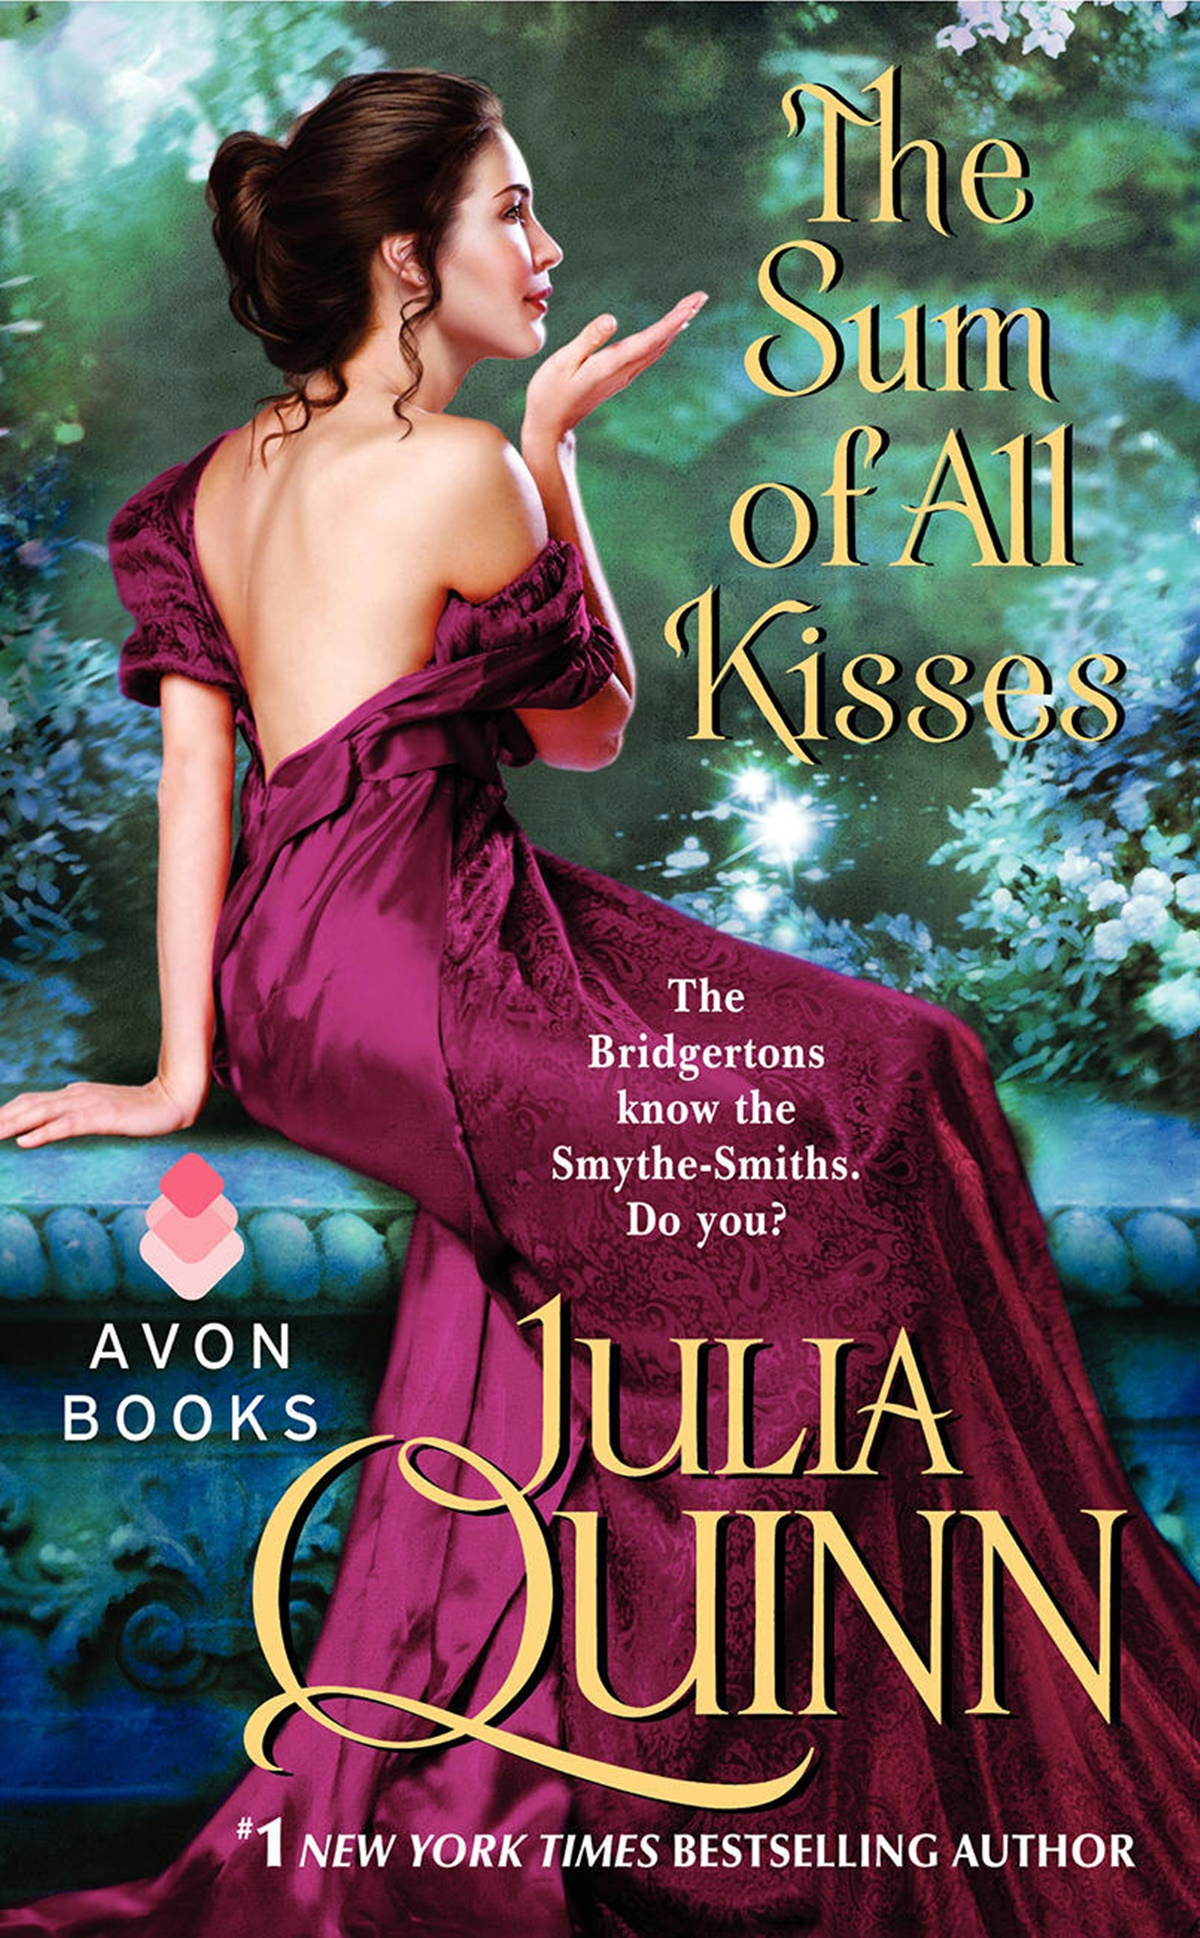 Julia Quinn Books, cover of The Sum of All Kisses by Julia Quinn, books